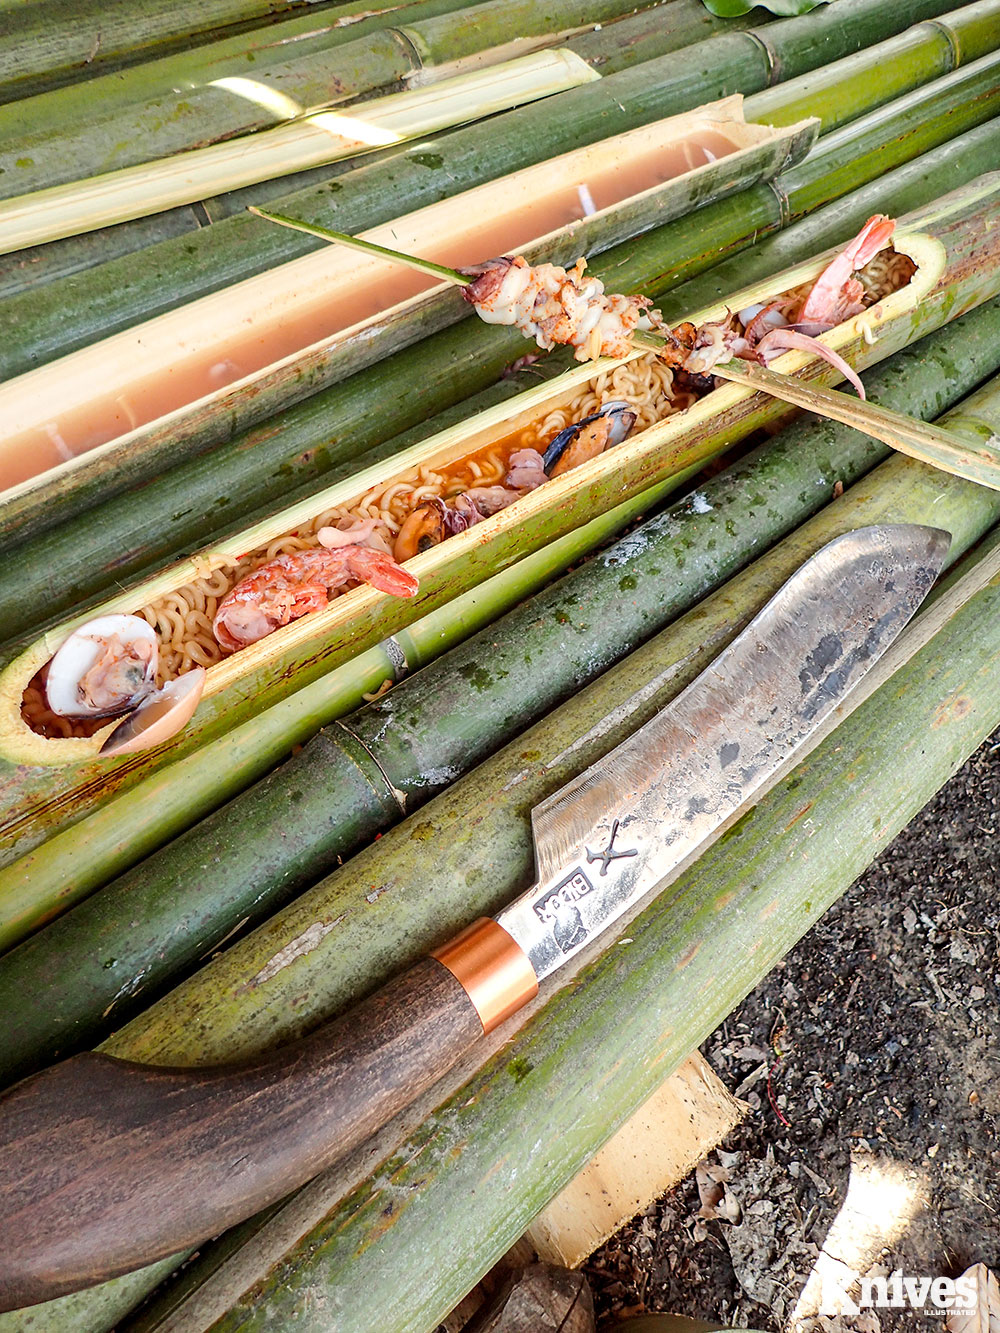 This piece of bamboo was chopped at each side to pry off the top for a cooking tube or serving platter. The bamboo spoon/utensil was used as a skewer.